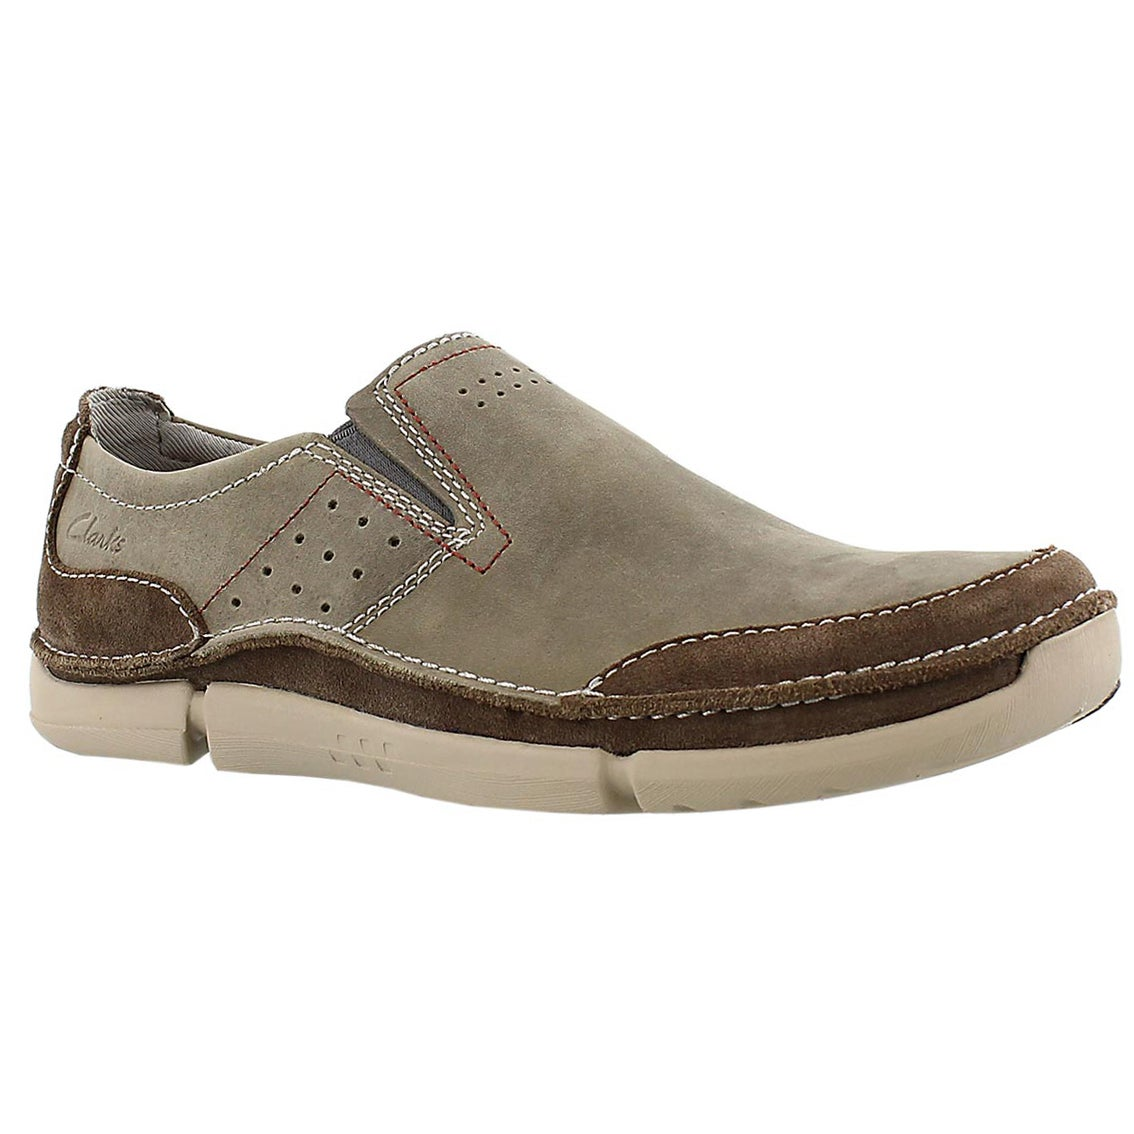 Mns Trikeyon Step olive casual slip on